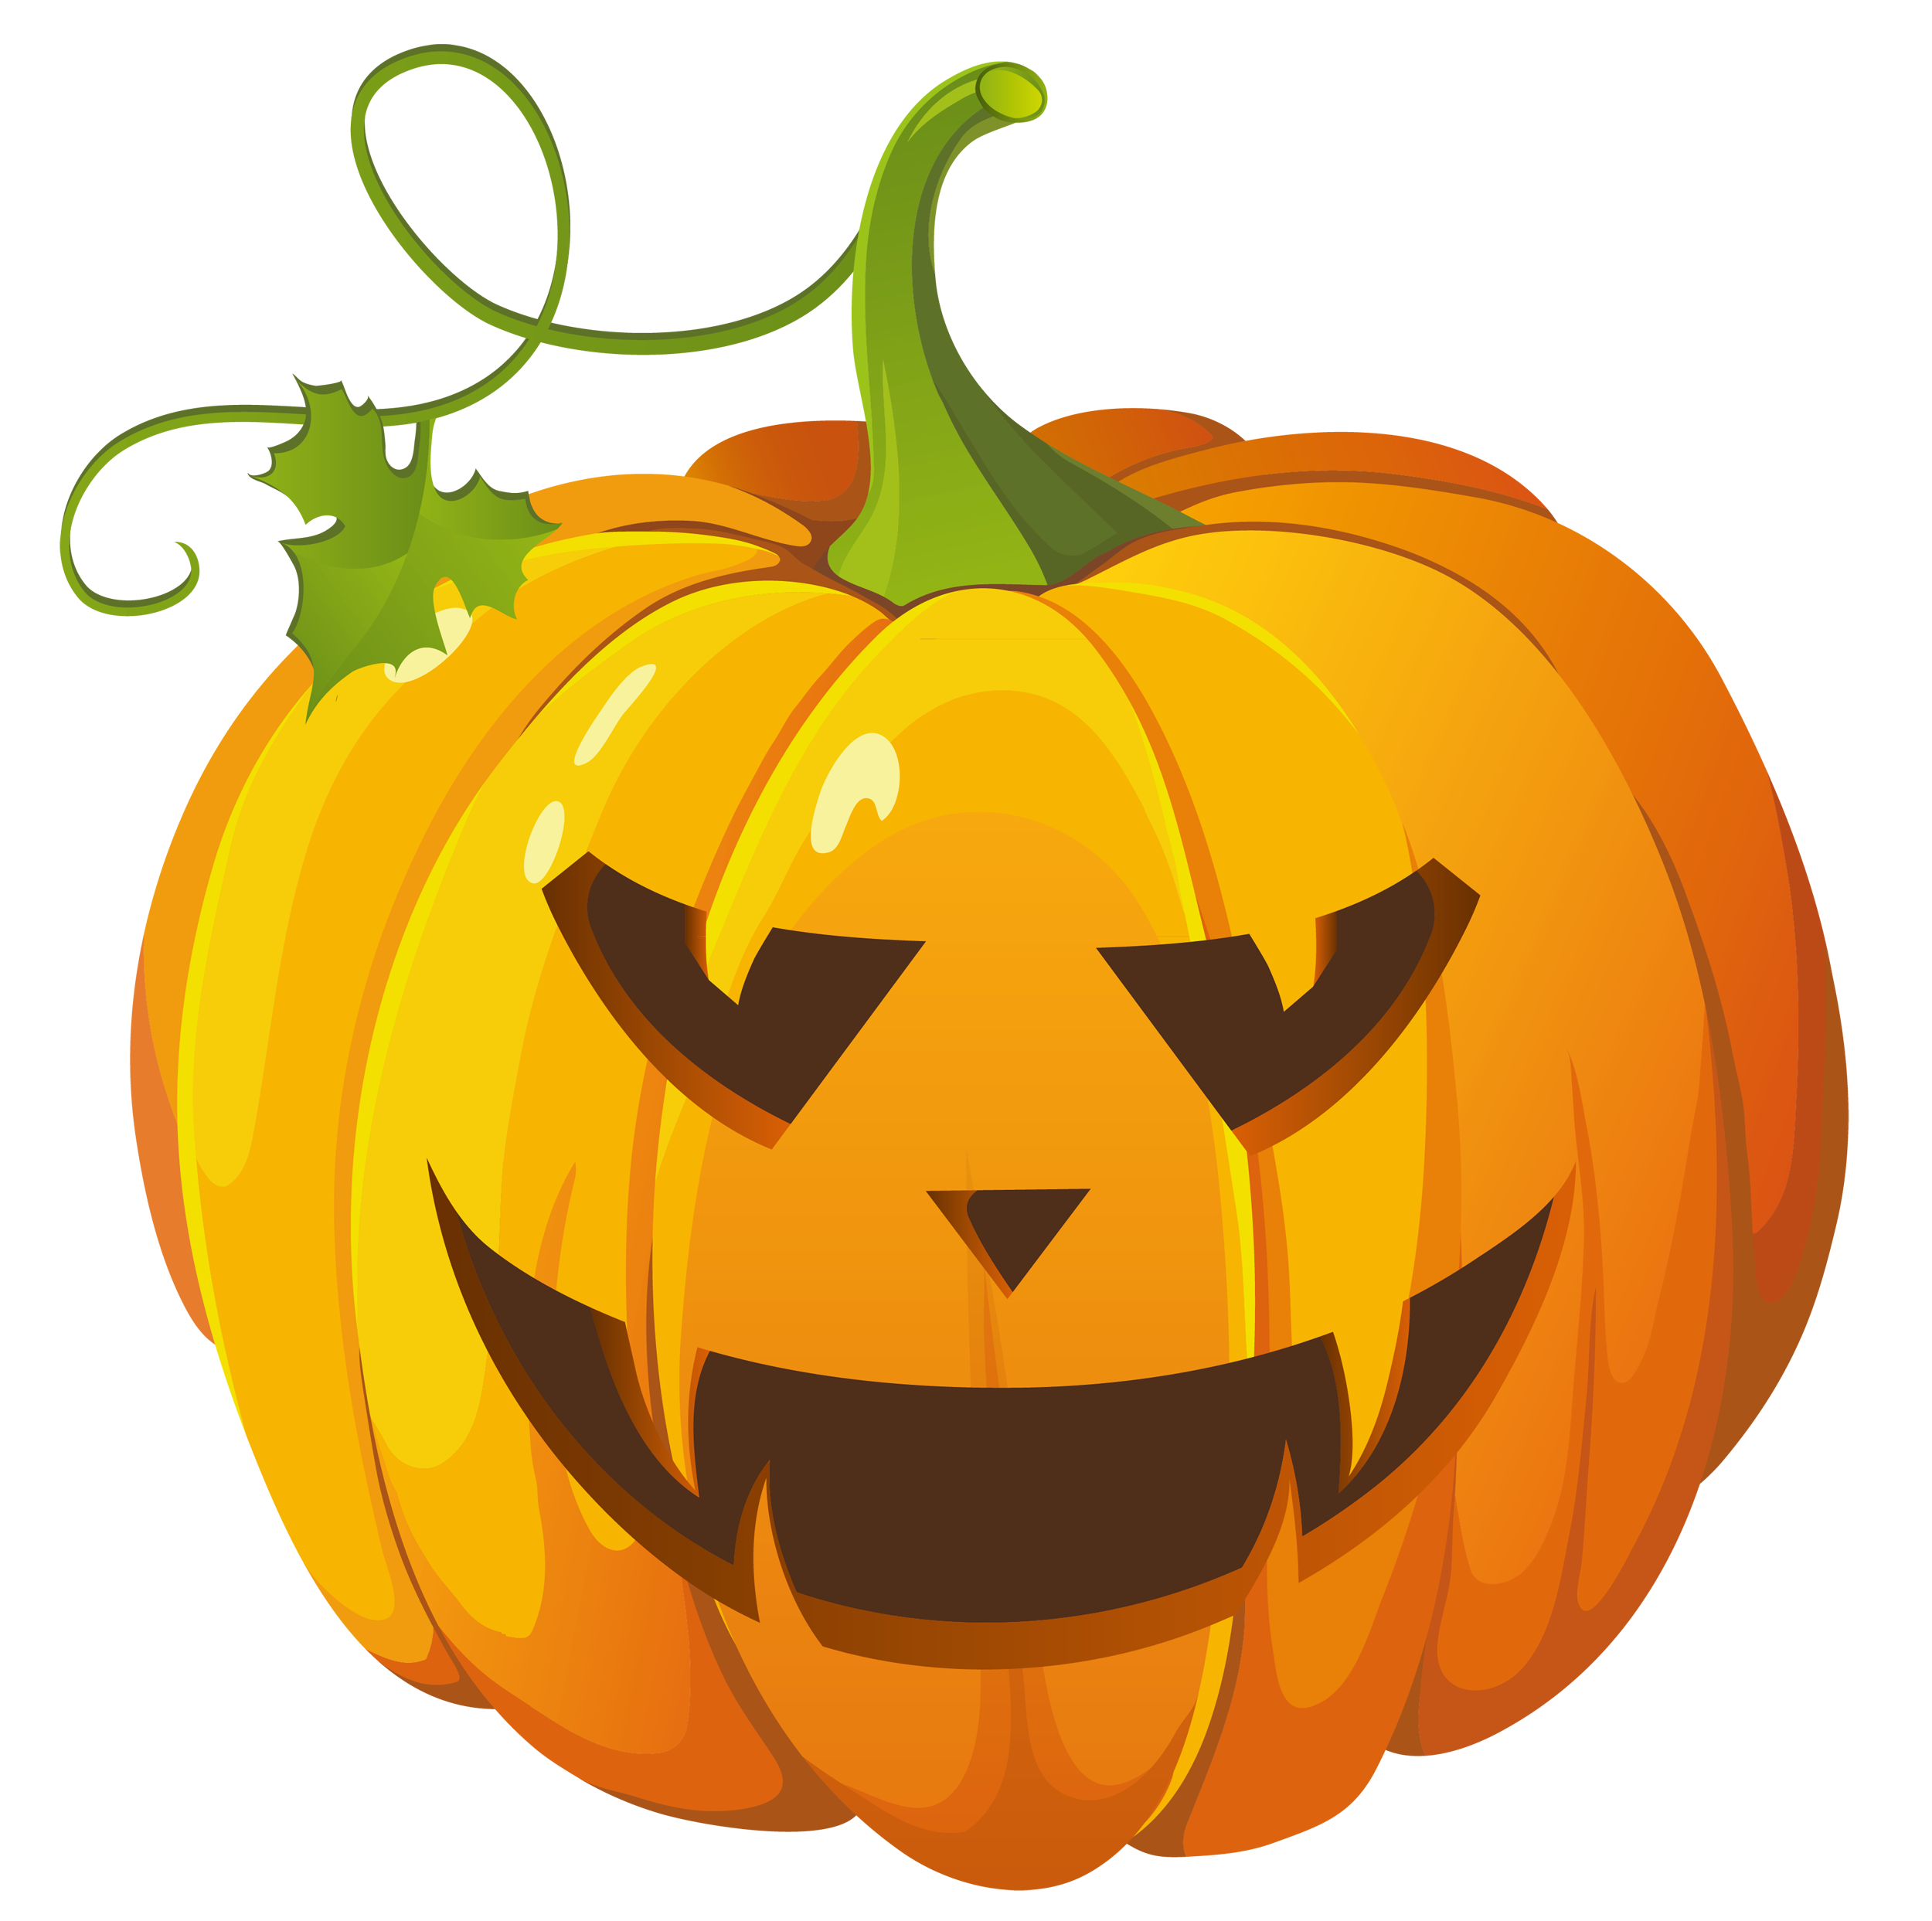 Pumpkins vector pumkin. Collection of free hollowing